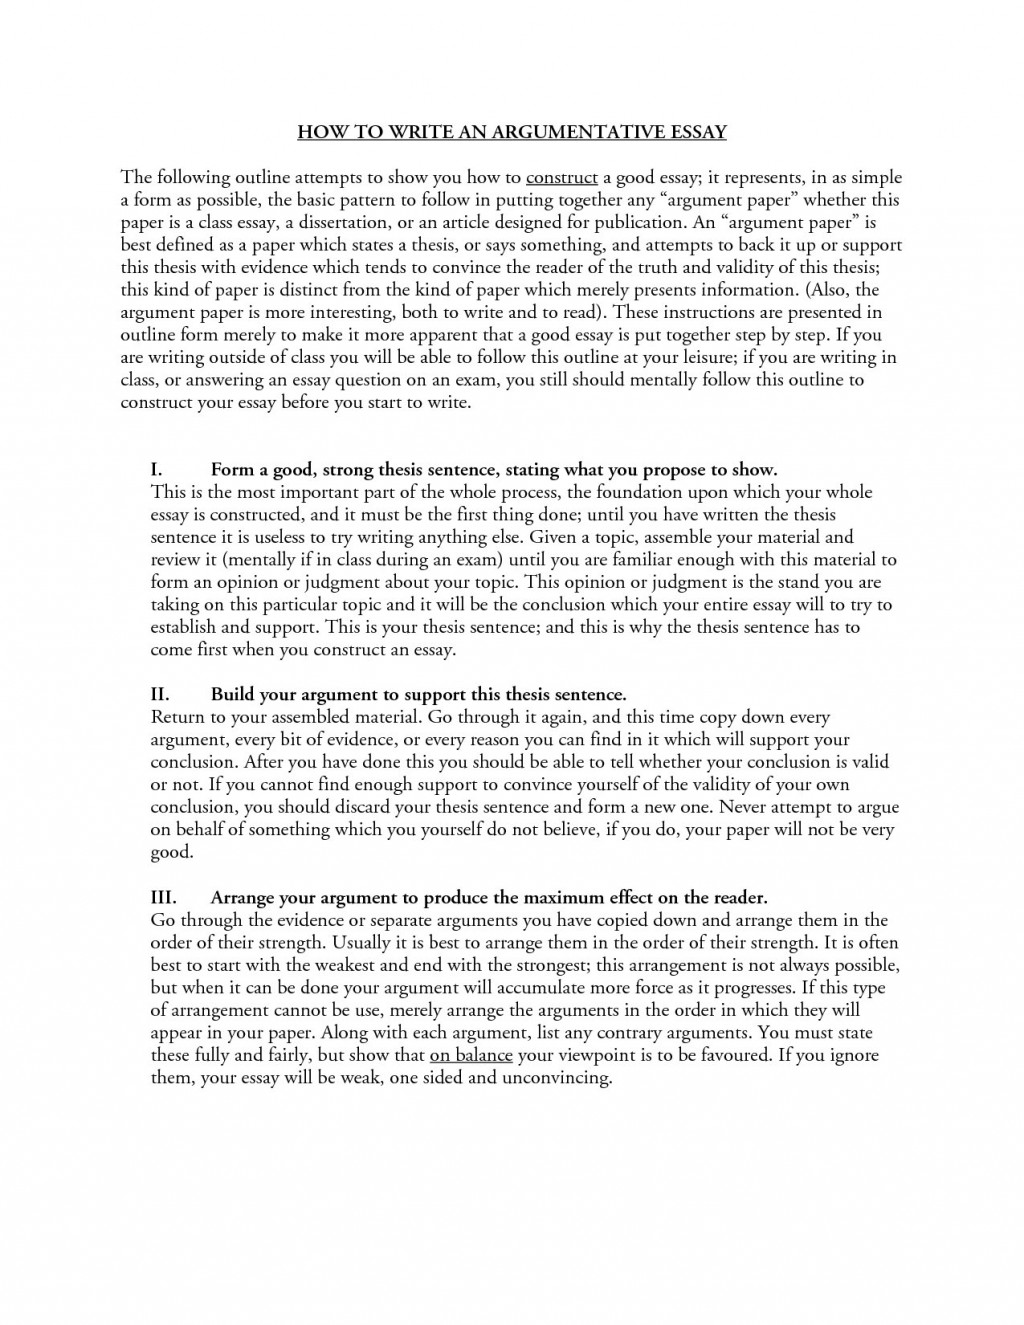 018 How To Begin An Essay Example Ways Start Research Term Paper Writing Service Write Argumentative Step By Pdf College Entrance Essays Psychol Outline Examples Ap Lang Incredible On A Book You Didn't Read Open Paragraph About Yourself For Large